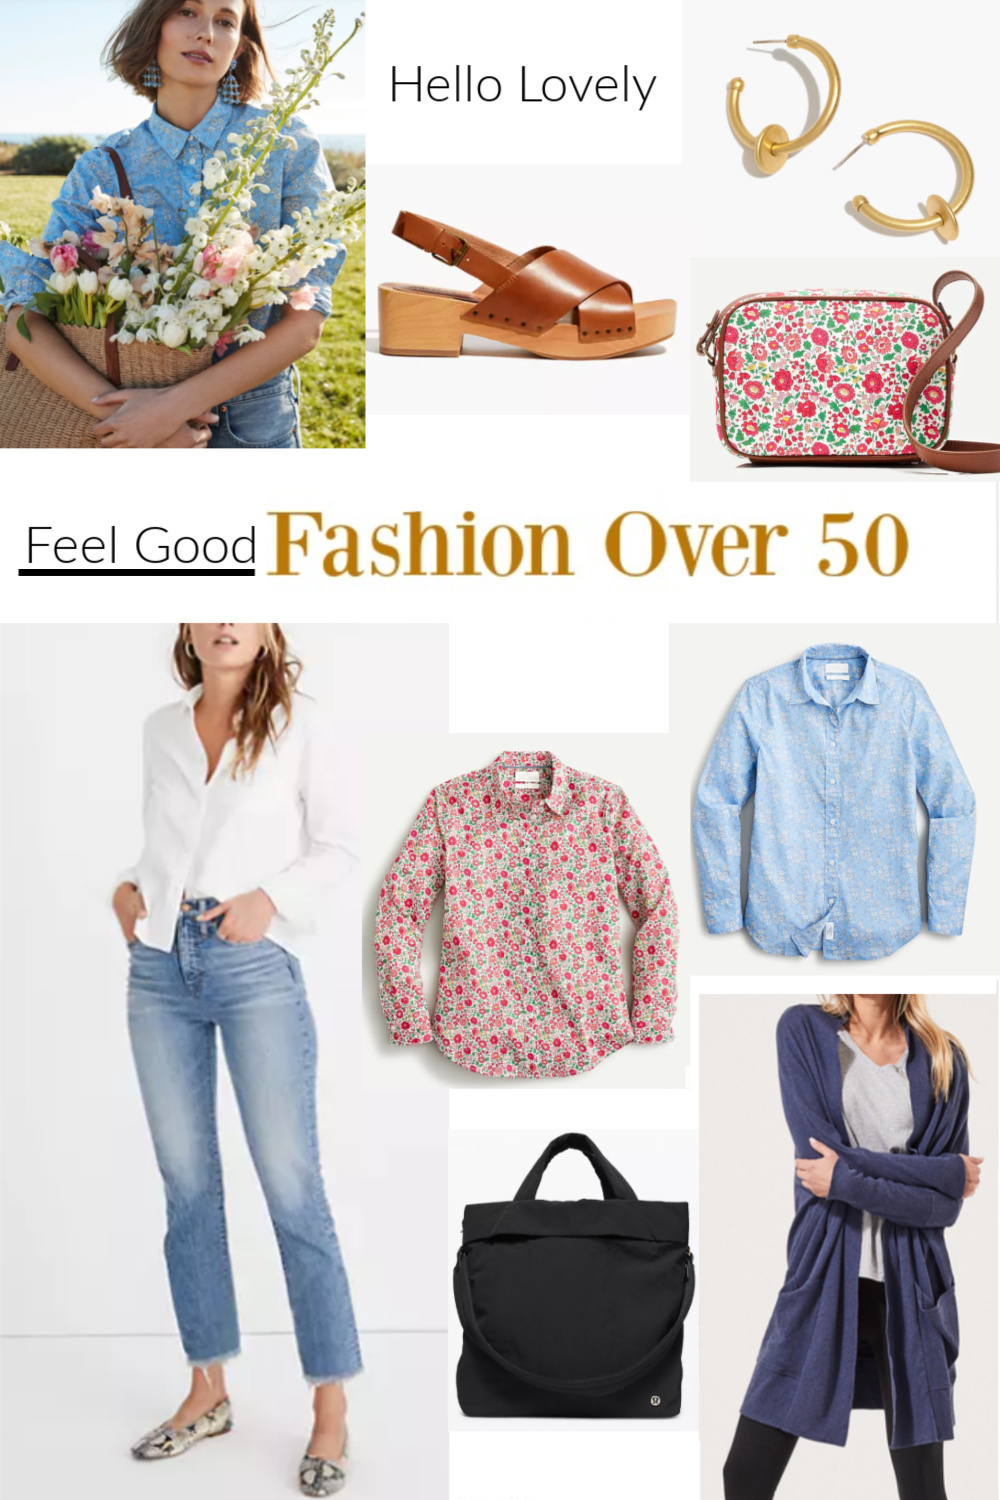 Hello Lovely Feel Good Fashion Over 50 - come shop the look! #fashionover50 #over50fashion #getthelook